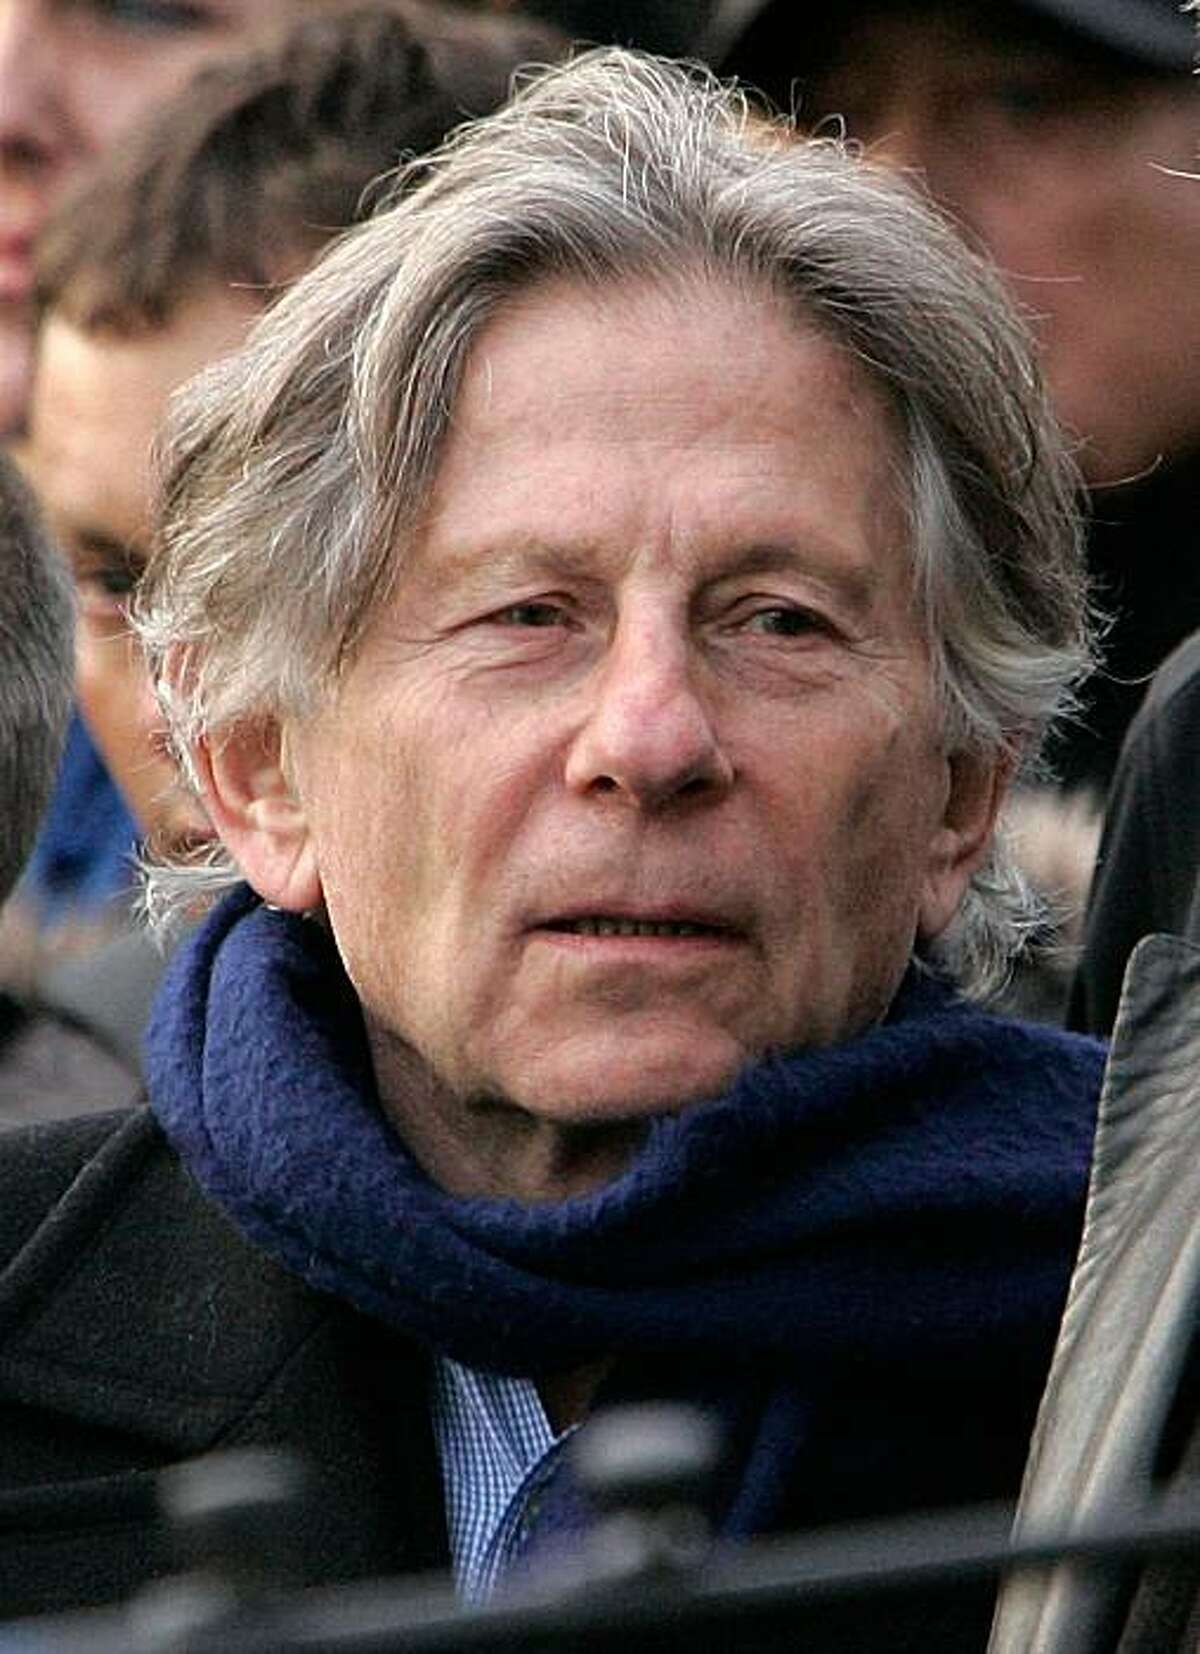 """Film director Roman Polanski in Montrouge, France. Lawyers for the """"Chinatown"""" director Polanski said Tuesday Jan 12, 2010 that a December 2009 photo and many others invaded his privacy as well as his family's, and he and his wife are suing four French publications, two newspapers and two magazines, for a total of about $217,000 dollars."""